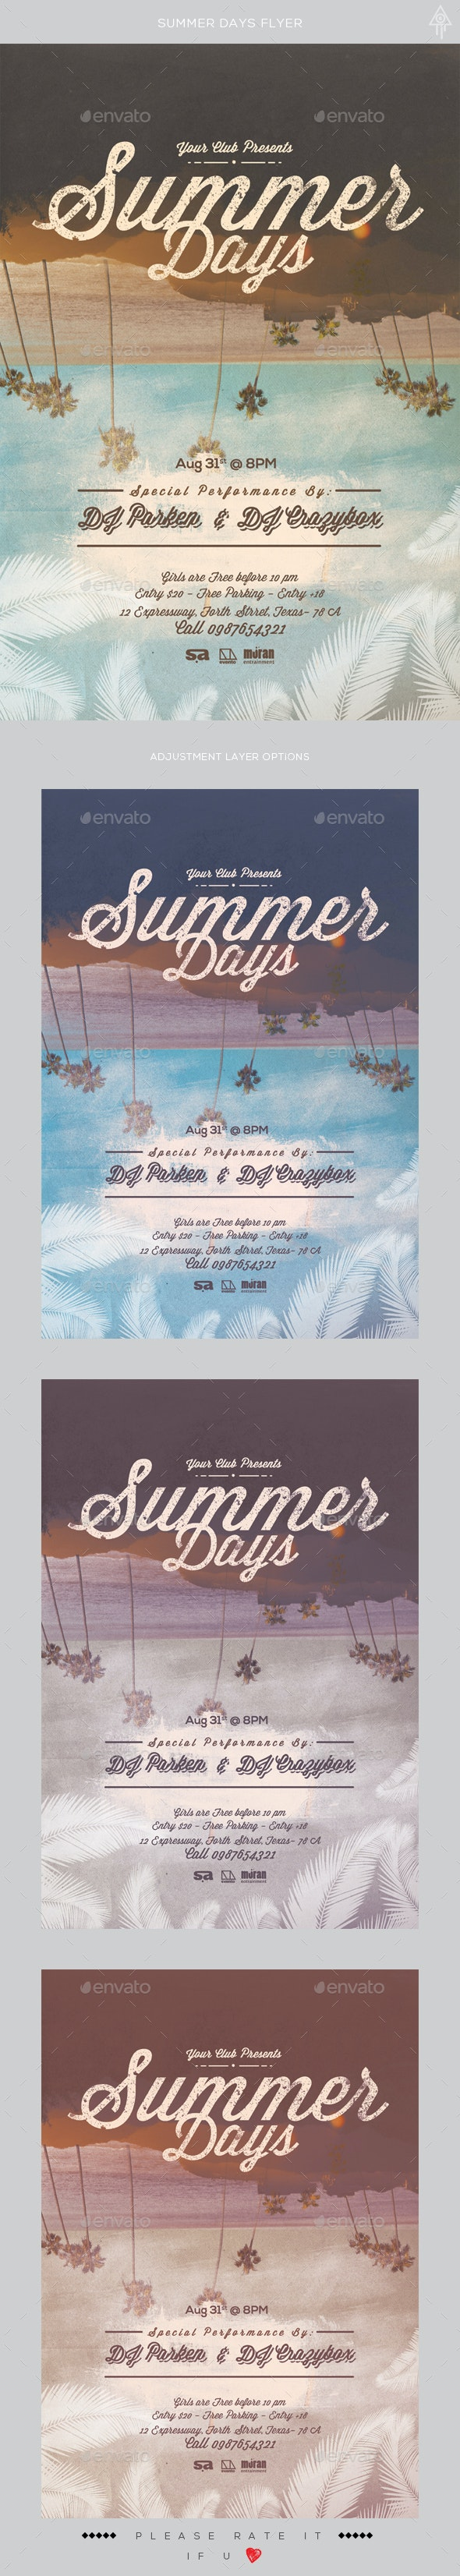 Summer Days Flyer - Clubs & Parties Events